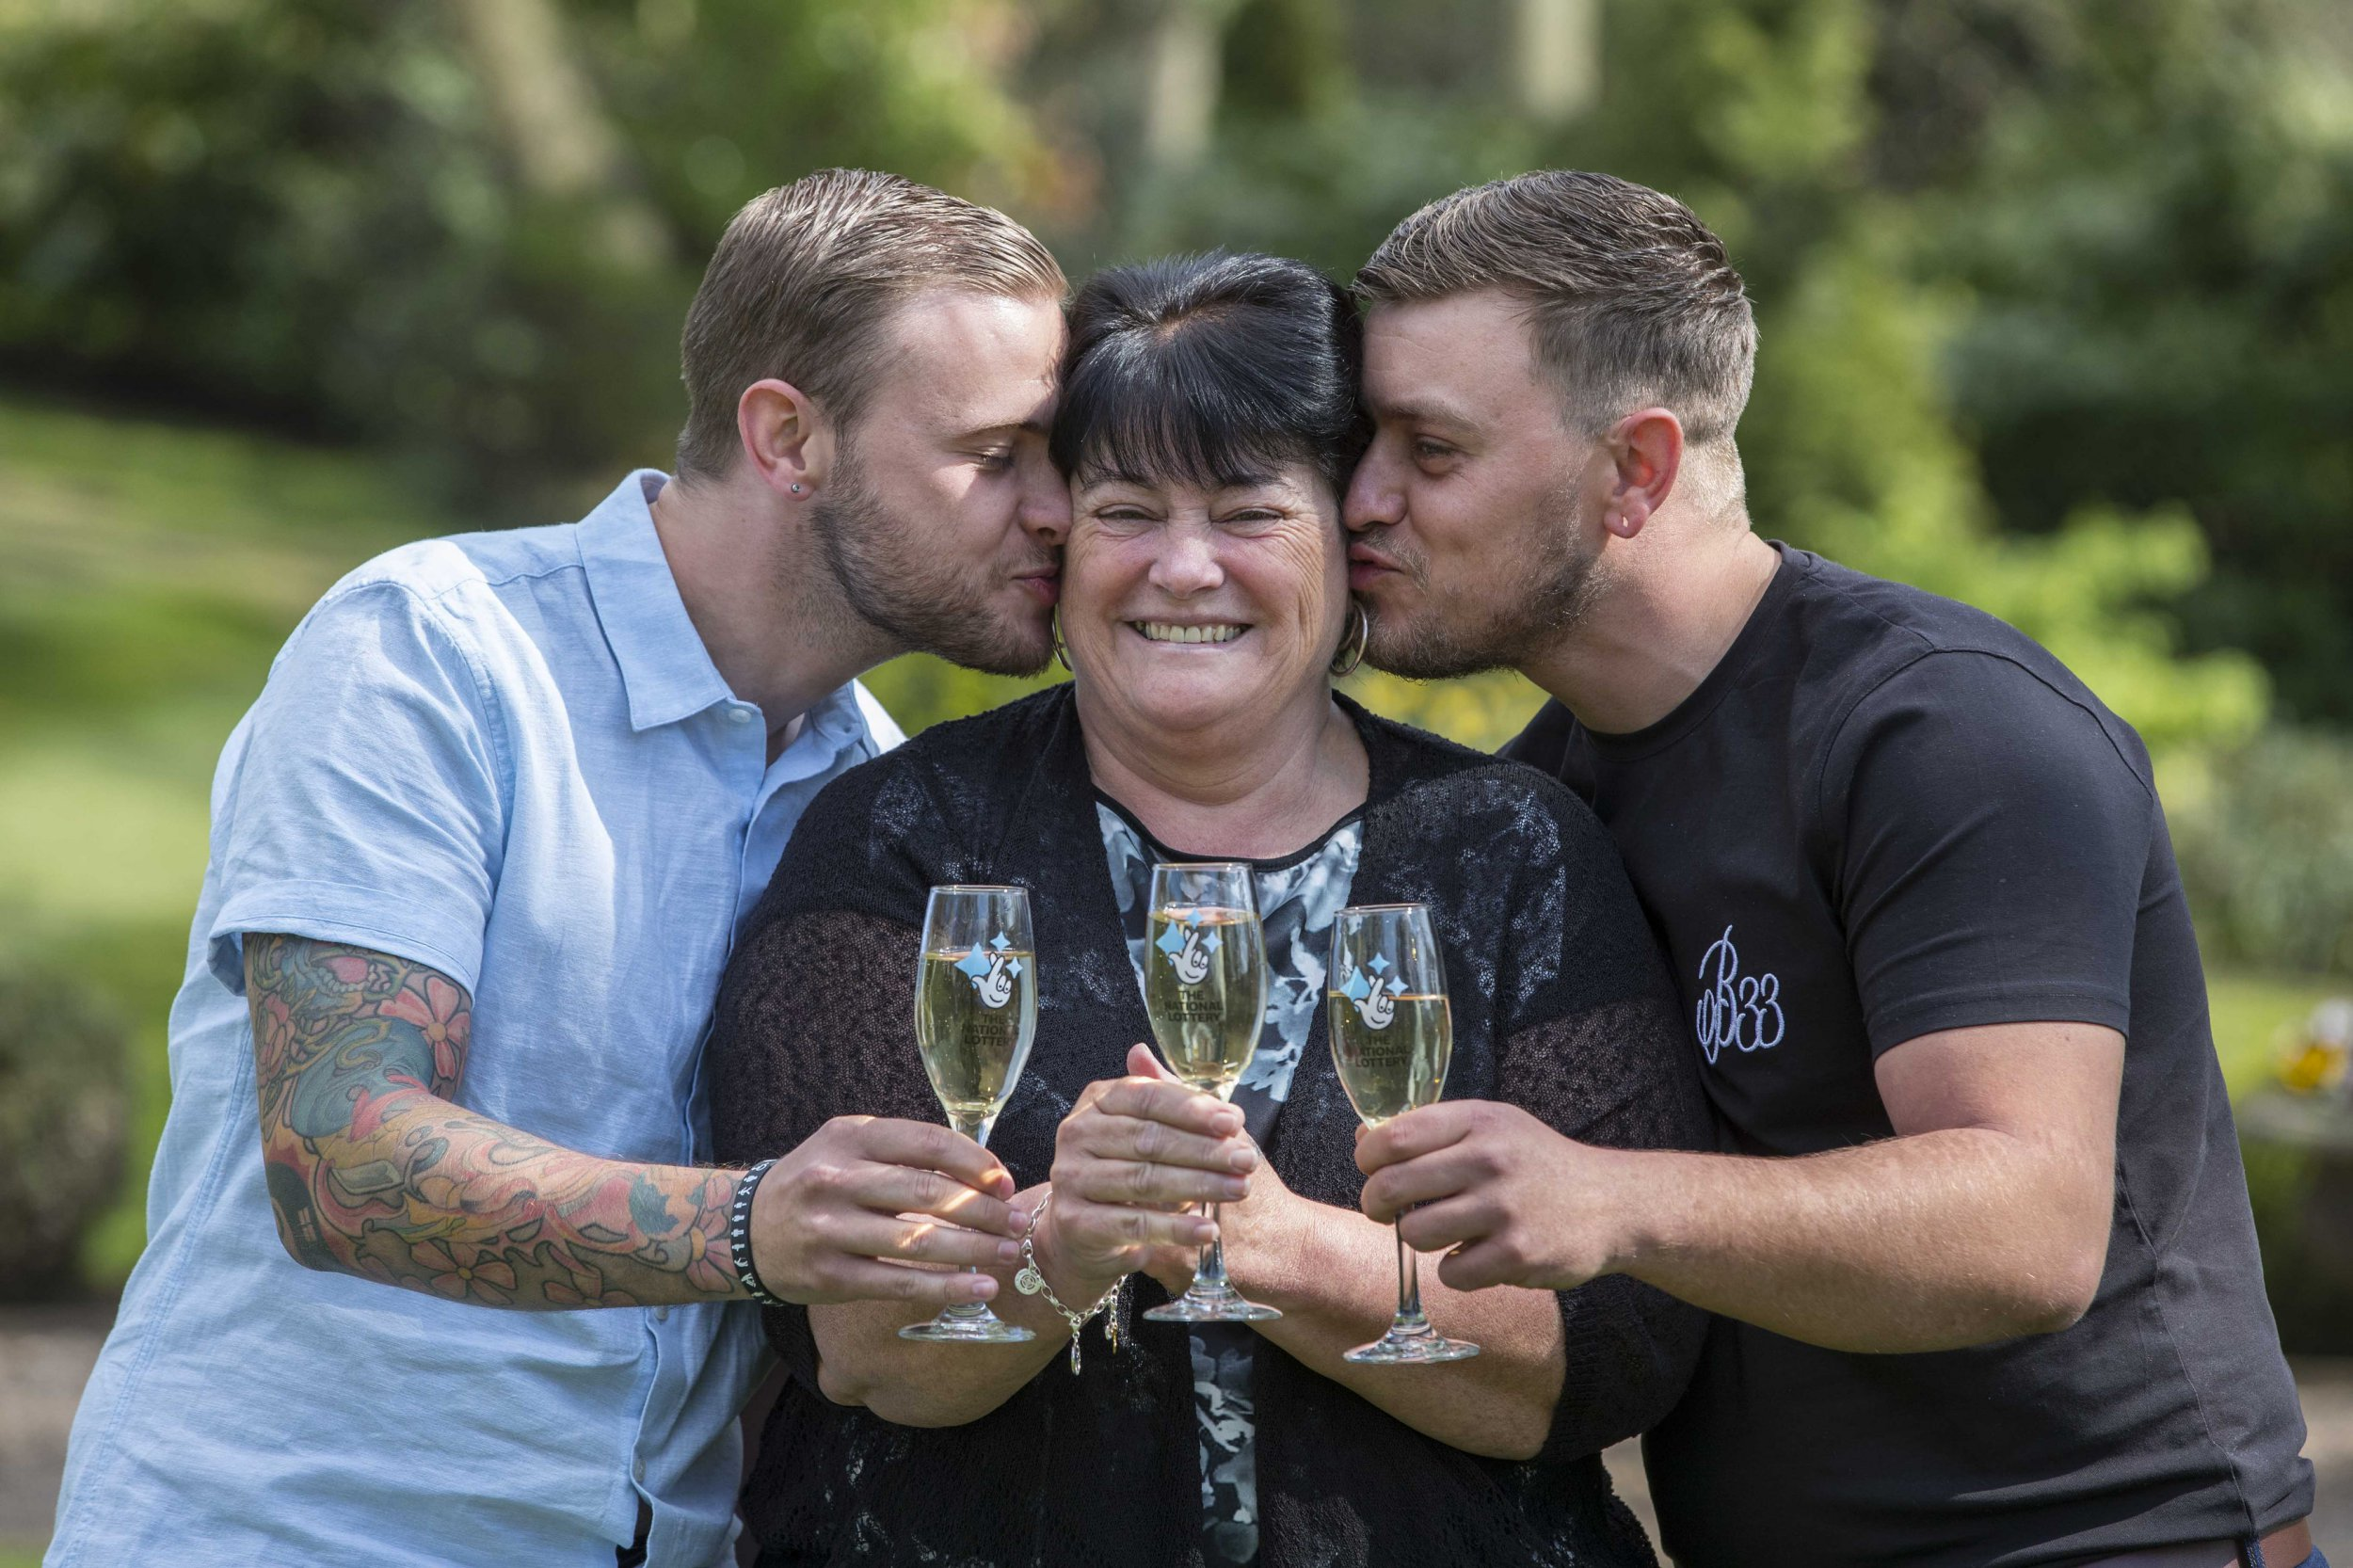 Undated handout photo issued by the National Lottery of ??1m winner Paula Williamson (centre) with her two sons, Jack (left) and Ian at Wentbridge House Hotel, Wentbridge, Pontefract, West Yorkshire. PRESS ASSOCIATION Photo. Issue date: Tuesday April 9, 2019. Paula Williamson, 59, a dinner lady from Barnsley, managed to keep her ??1m EuroMillions win secret from her sons, Jack and Ian, for five weeks. She only told her 68-year-old husband, Geoff, about the news, as Jack was on holiday and she wanted to tell him and Ian together. See PA story Barnsley. Photo credit should read: Jason Roberts/National Lottery/PA Wire NOTE TO EDITORS: This handout photo may only be used in for editorial reporting purposes for the contemporaneous illustration of events, things or the people in the image or facts mentioned in the caption. Reuse of the picture may require further permission from the copyright holder.